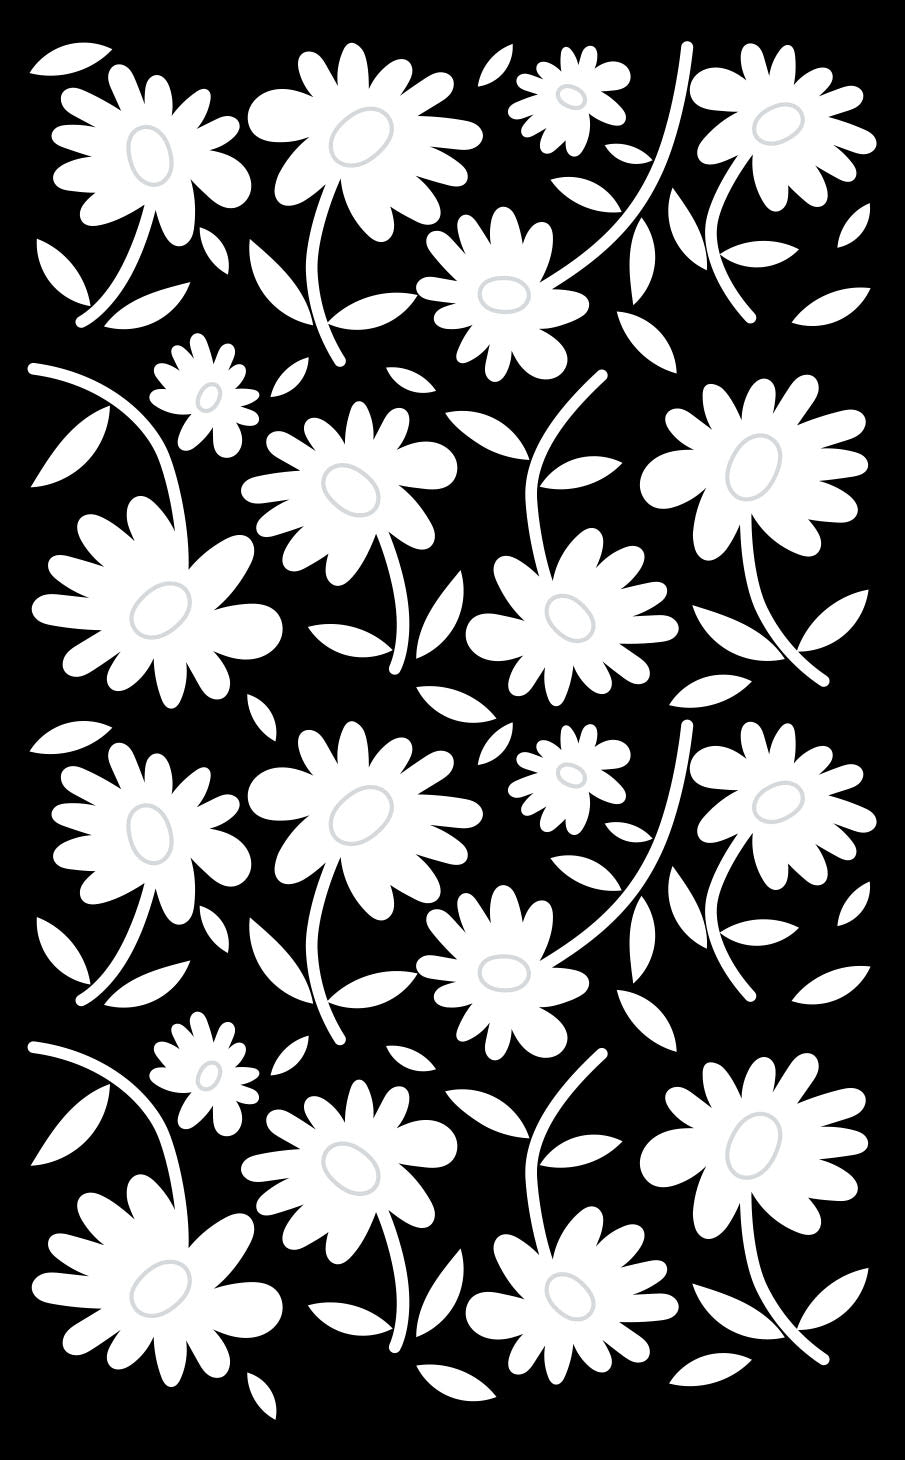 24 West Lemon Dainty Daisy Scarf Template